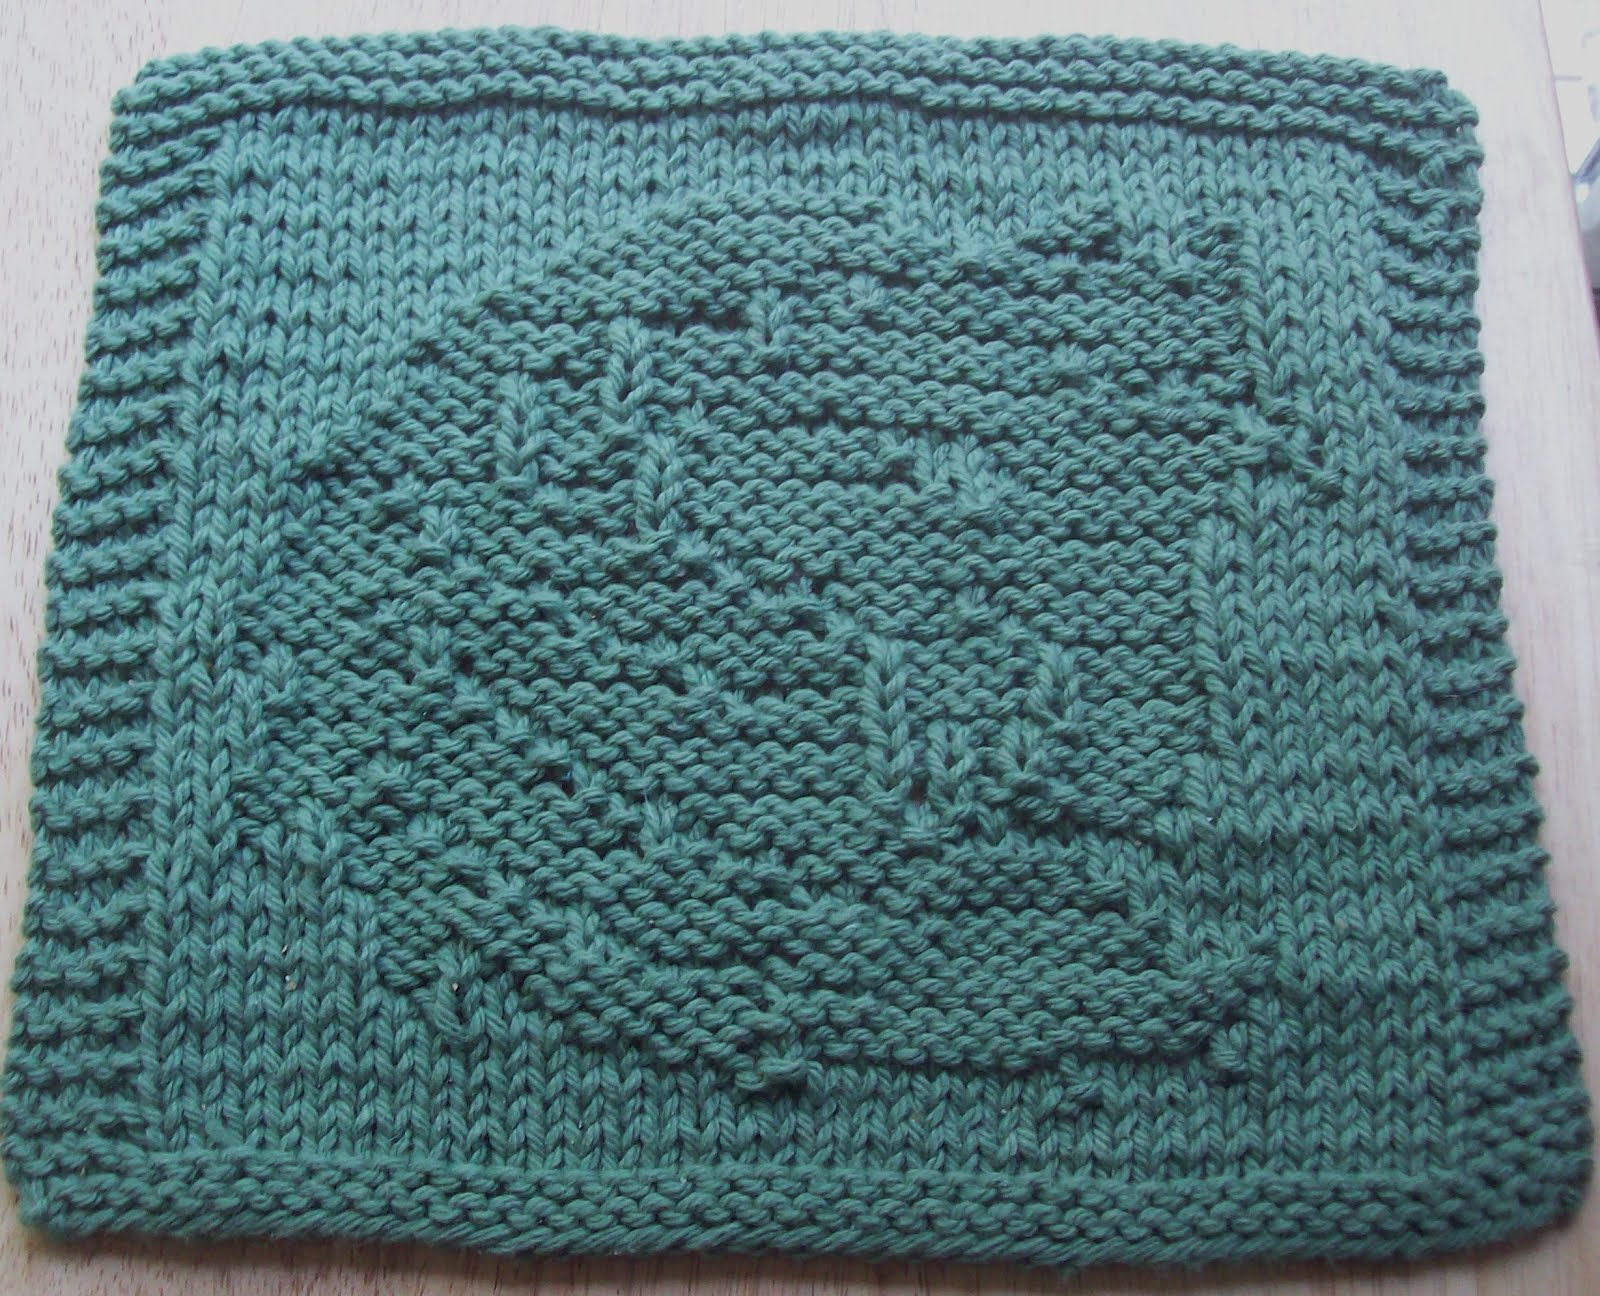 Knit Dishcloth Pattern Horse : DigKnitty Designs: Horse Head Too Knit Dishcloth Pattern